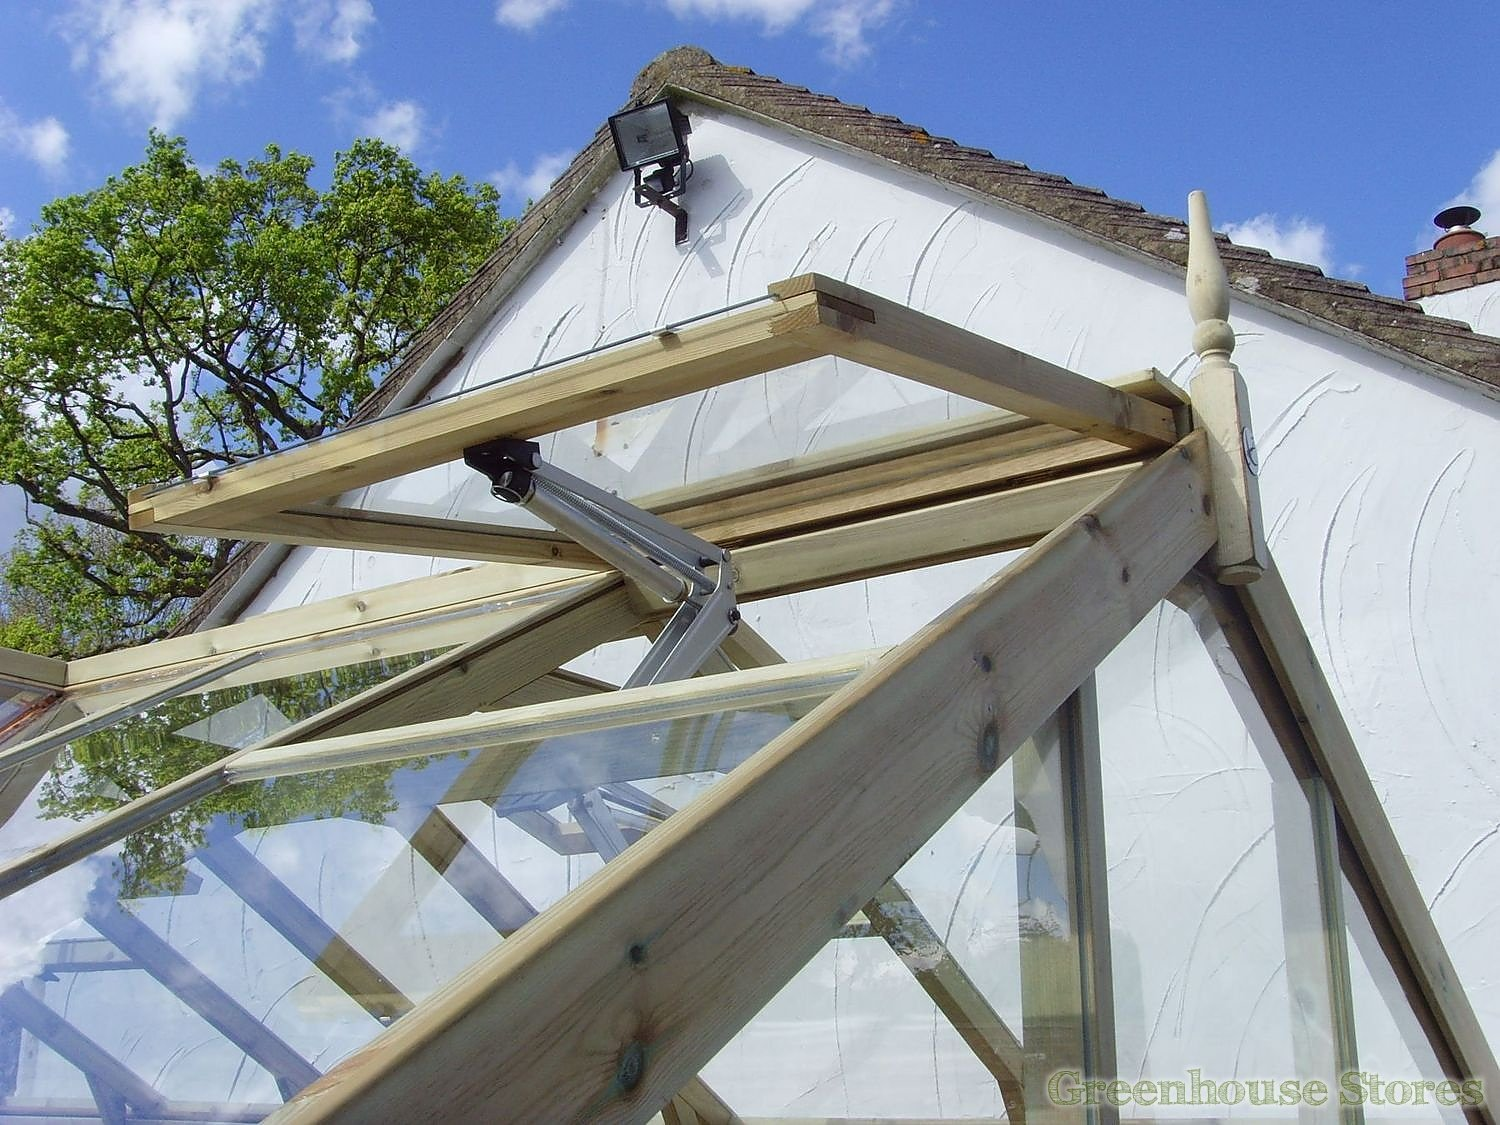 4x8 Greenhouse: Elite Compact 4x8 Greenhouse Horticultural